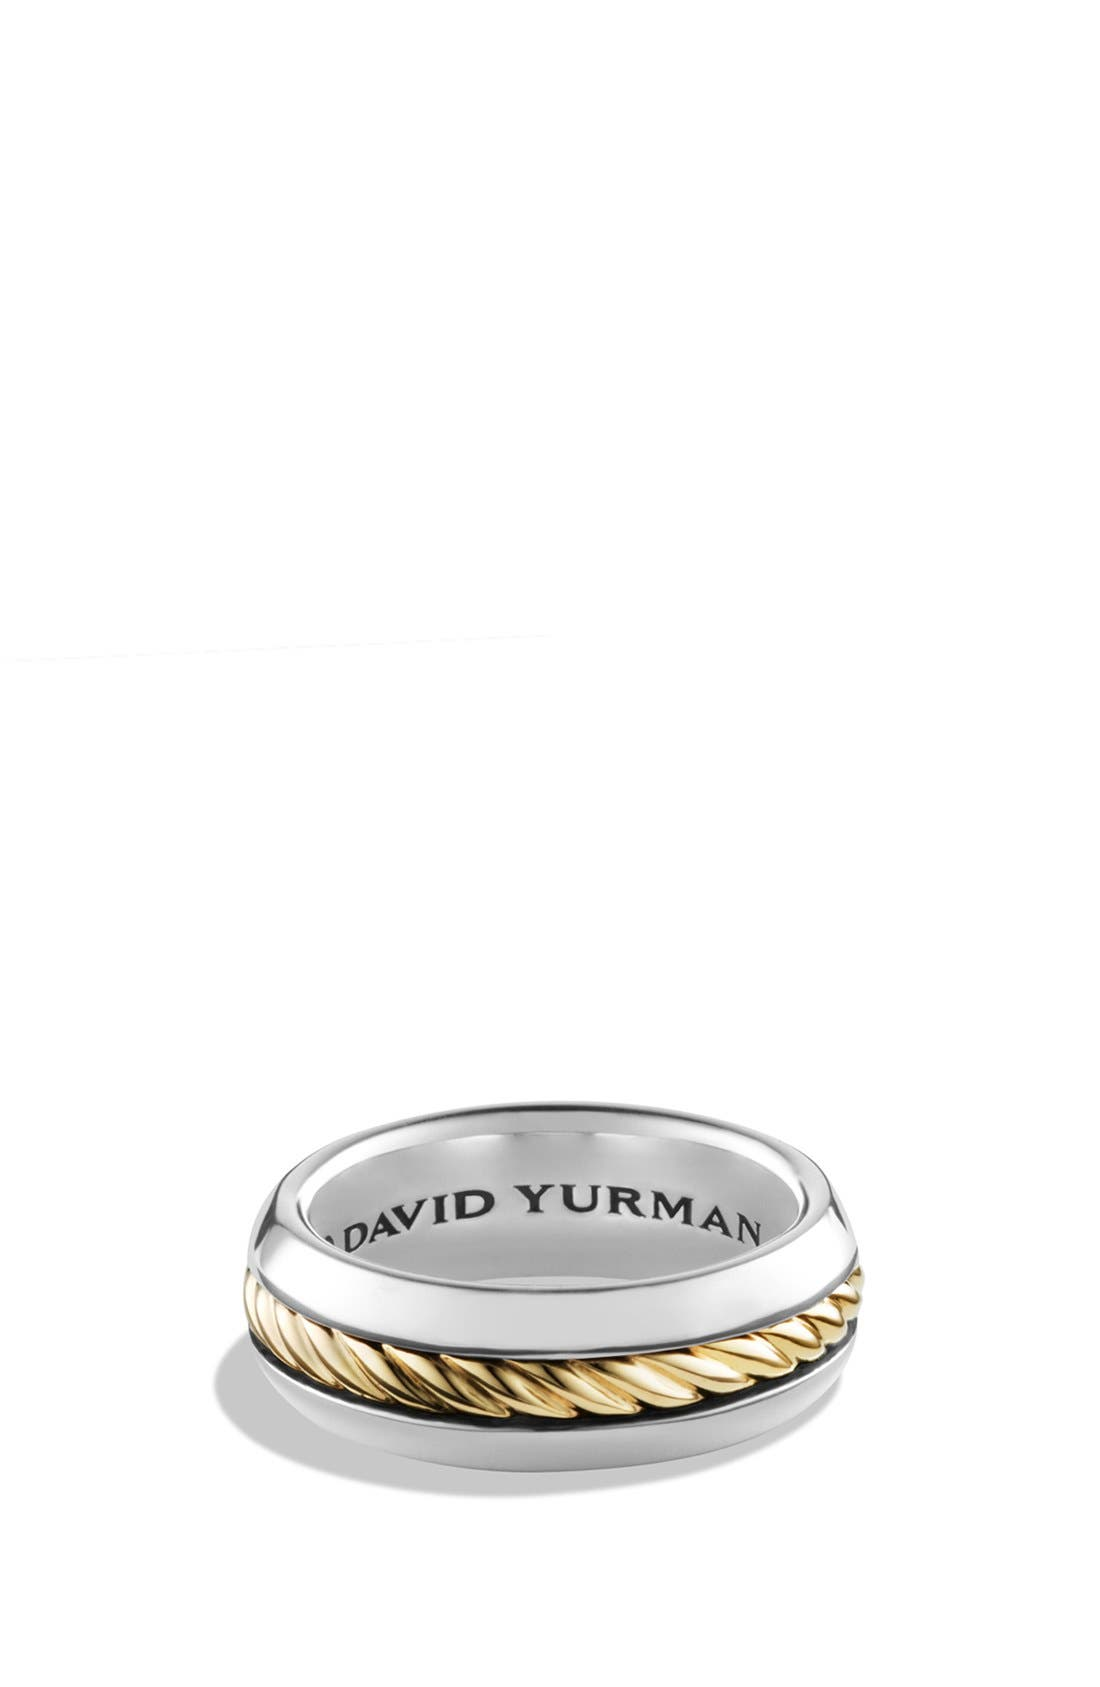 DAVID YURMAN Cable Classics Band Ring with 18K Gold